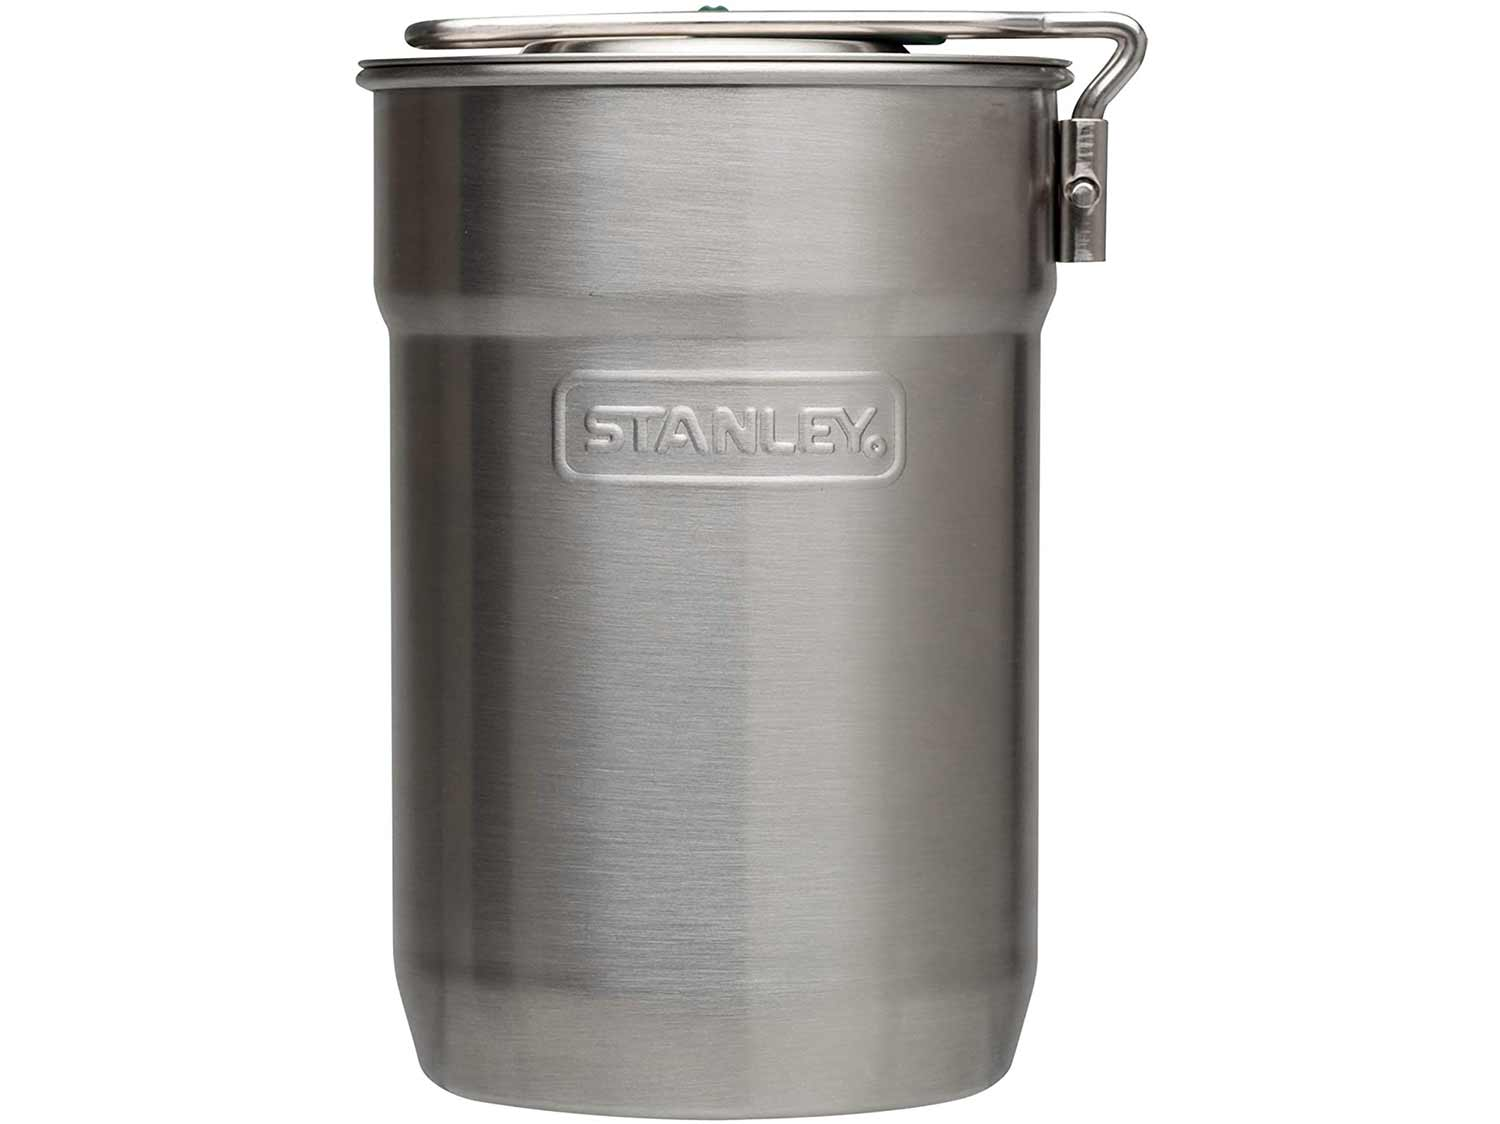 Stanley stainless steel cooking pot.